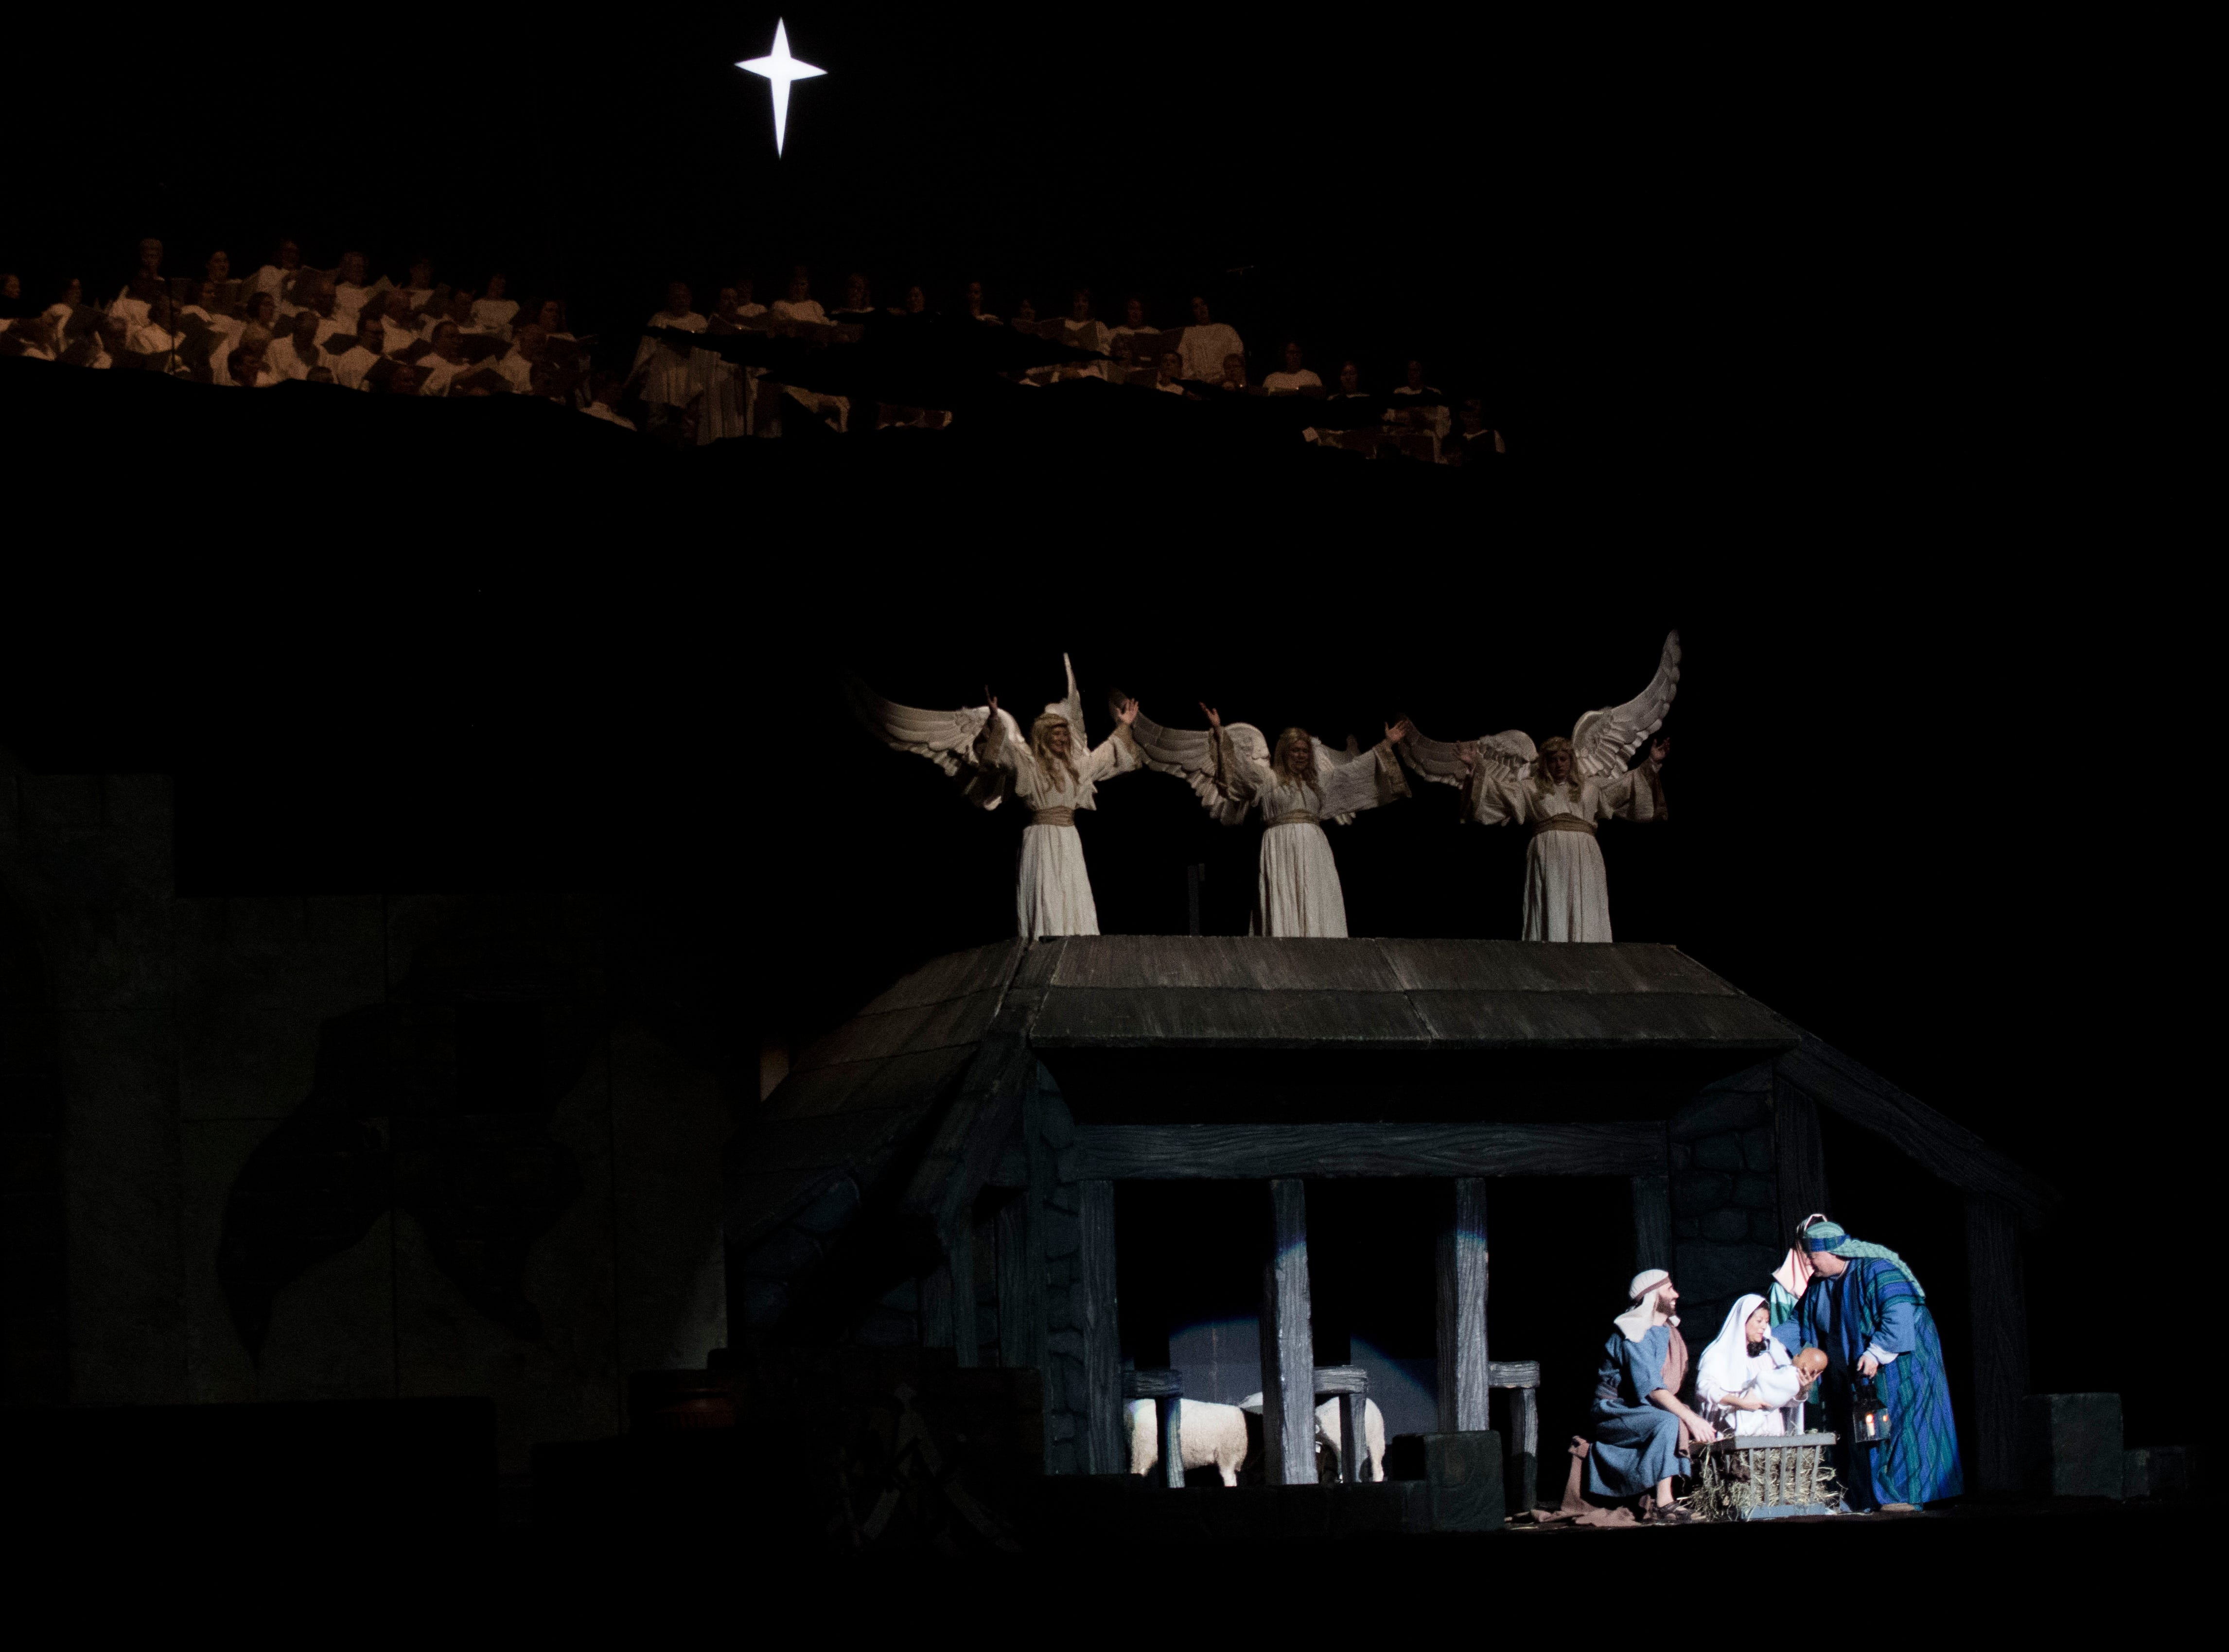 Scenes from the annual Knoxville Nativity Pageant at the Civic Coliseum Saturday, Dec. 8, 2018.